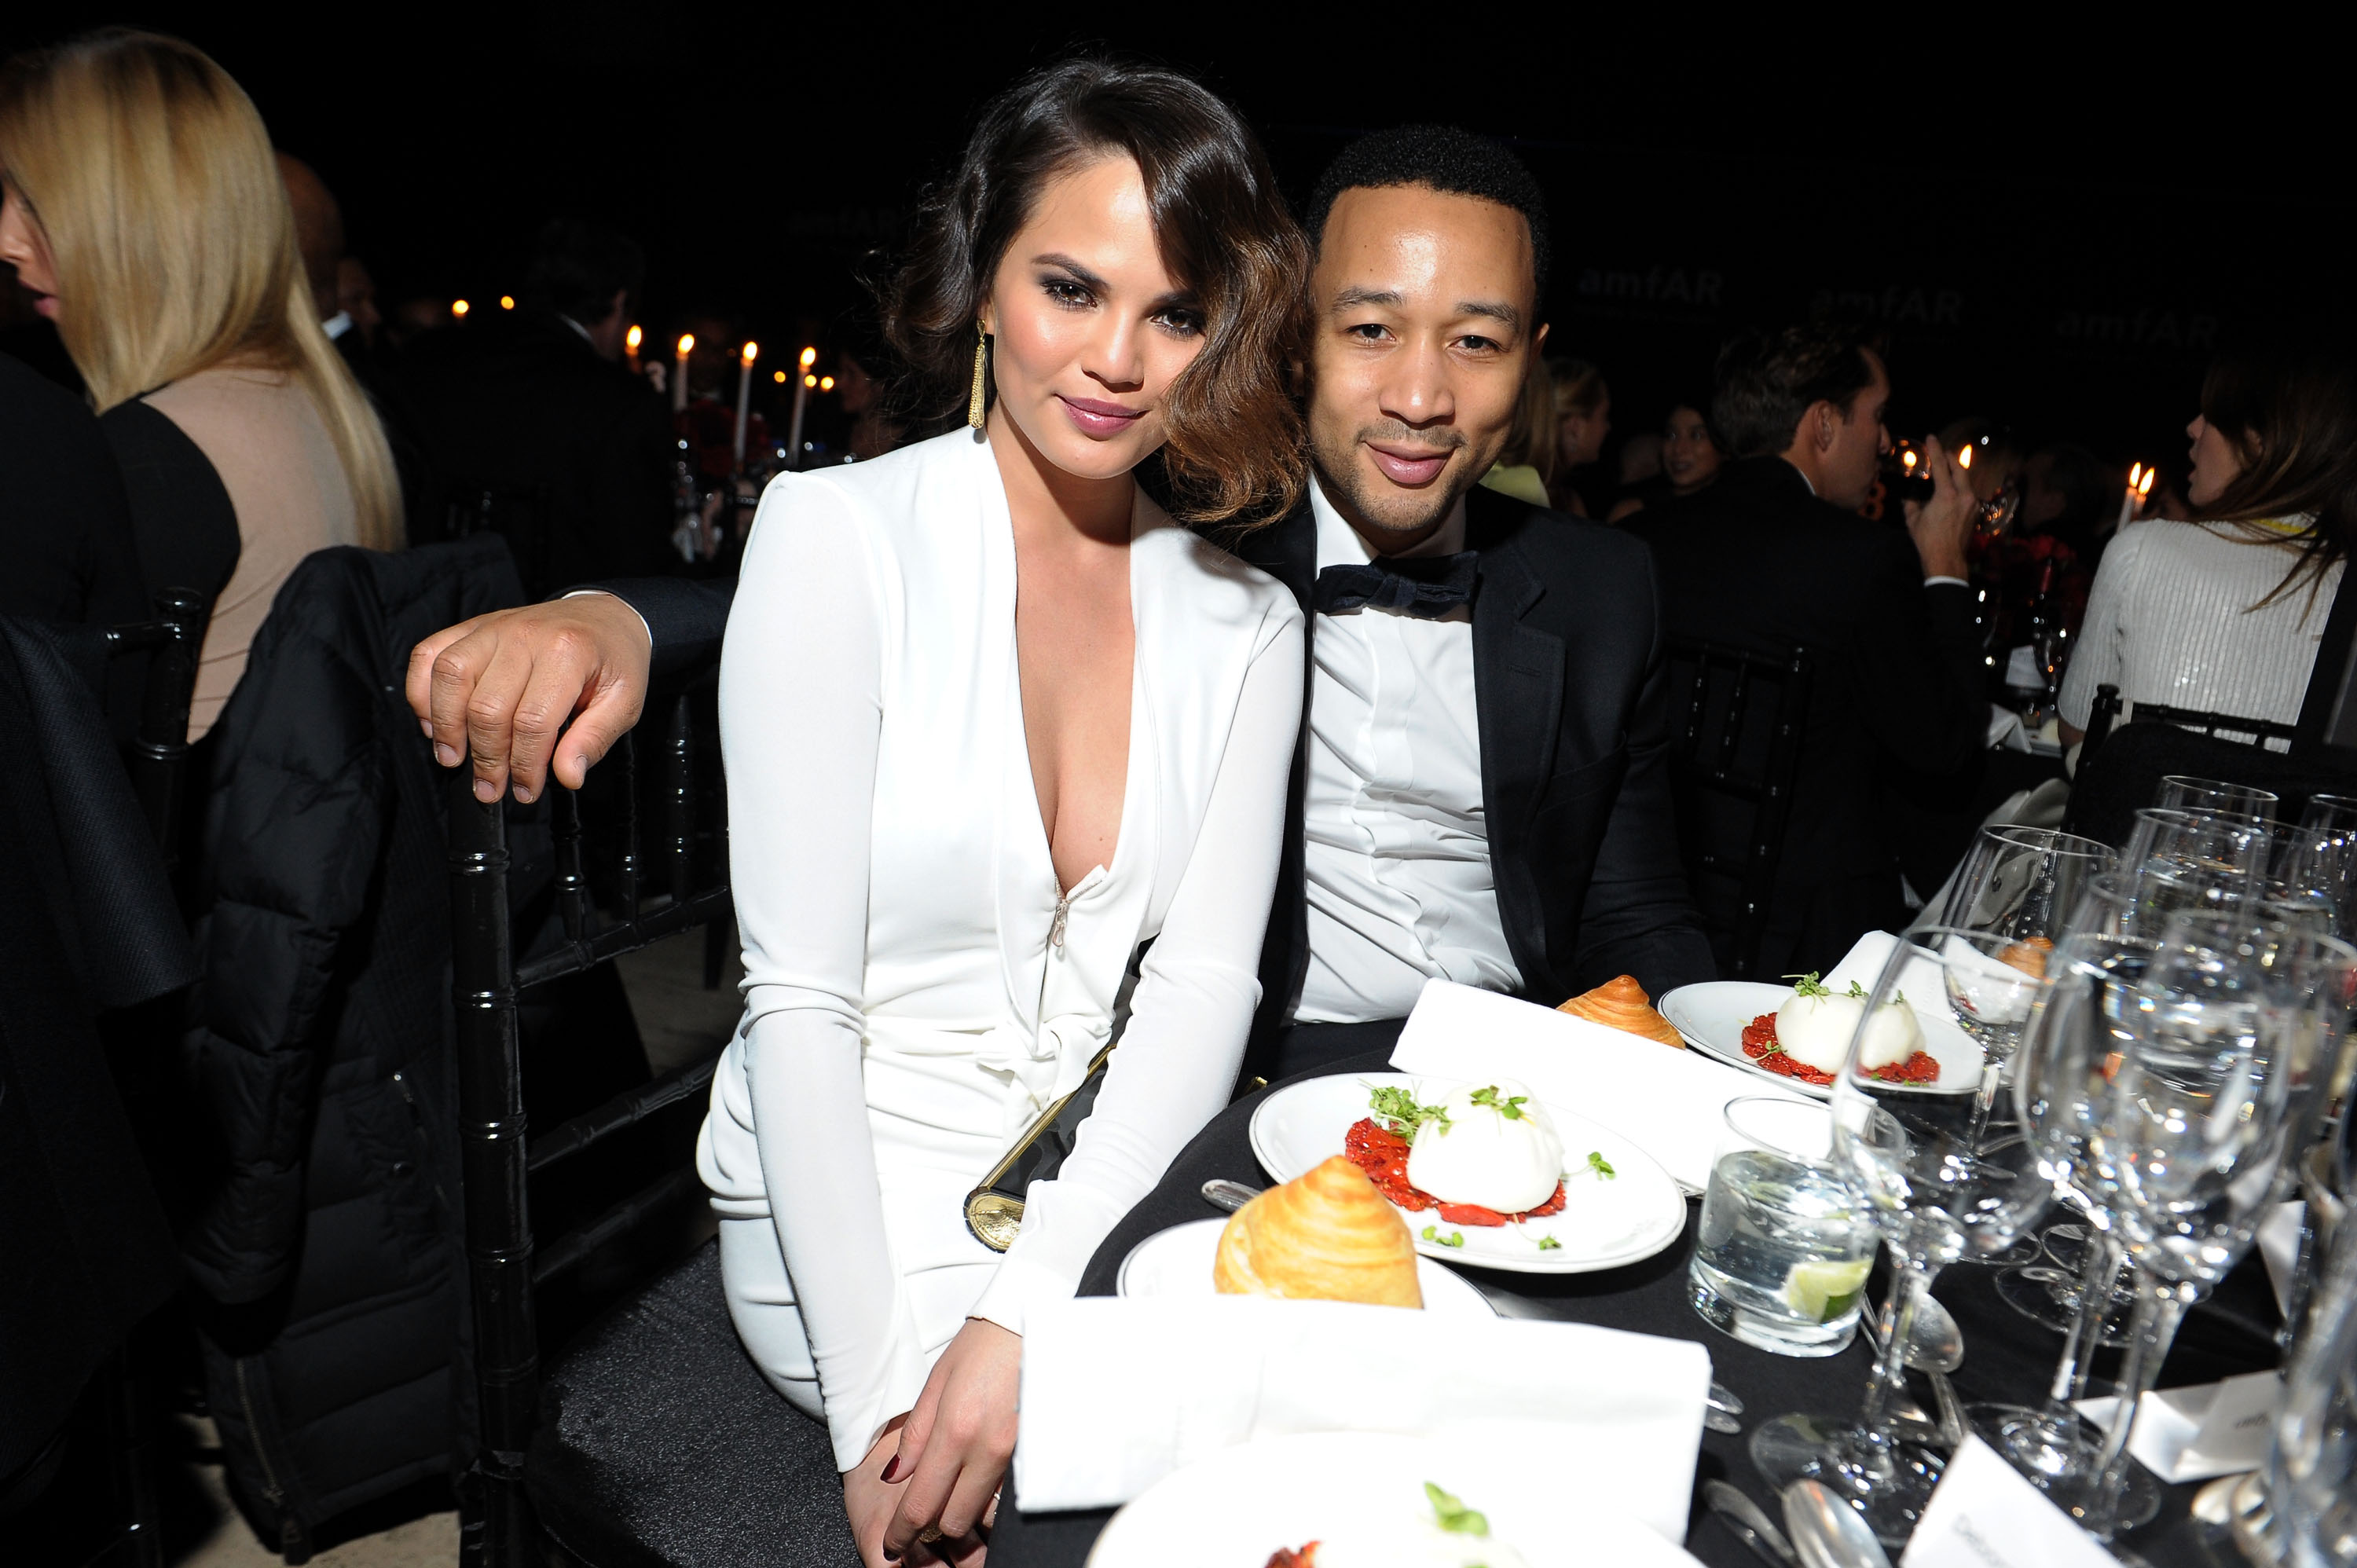 John Legend and Chrissy Teigen cuddled up during the amfAR New York Gala on Wednesday.